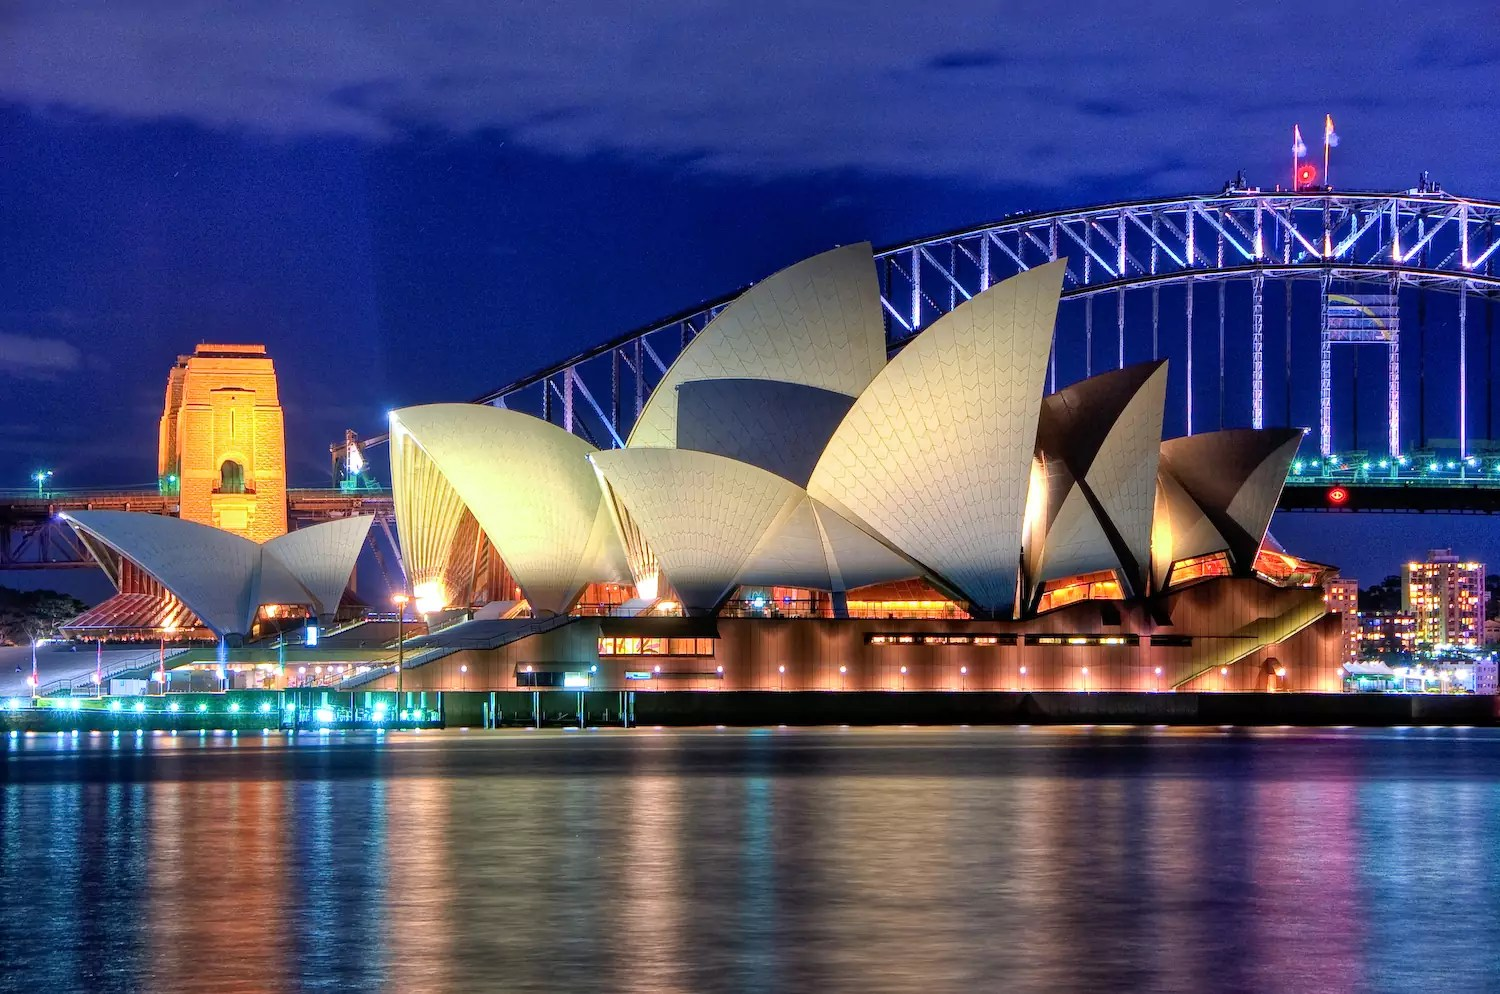 Sydney Opera House - photo by Hai Linh Truong from Sydney, NSW, Australia under CC-BY-2.0